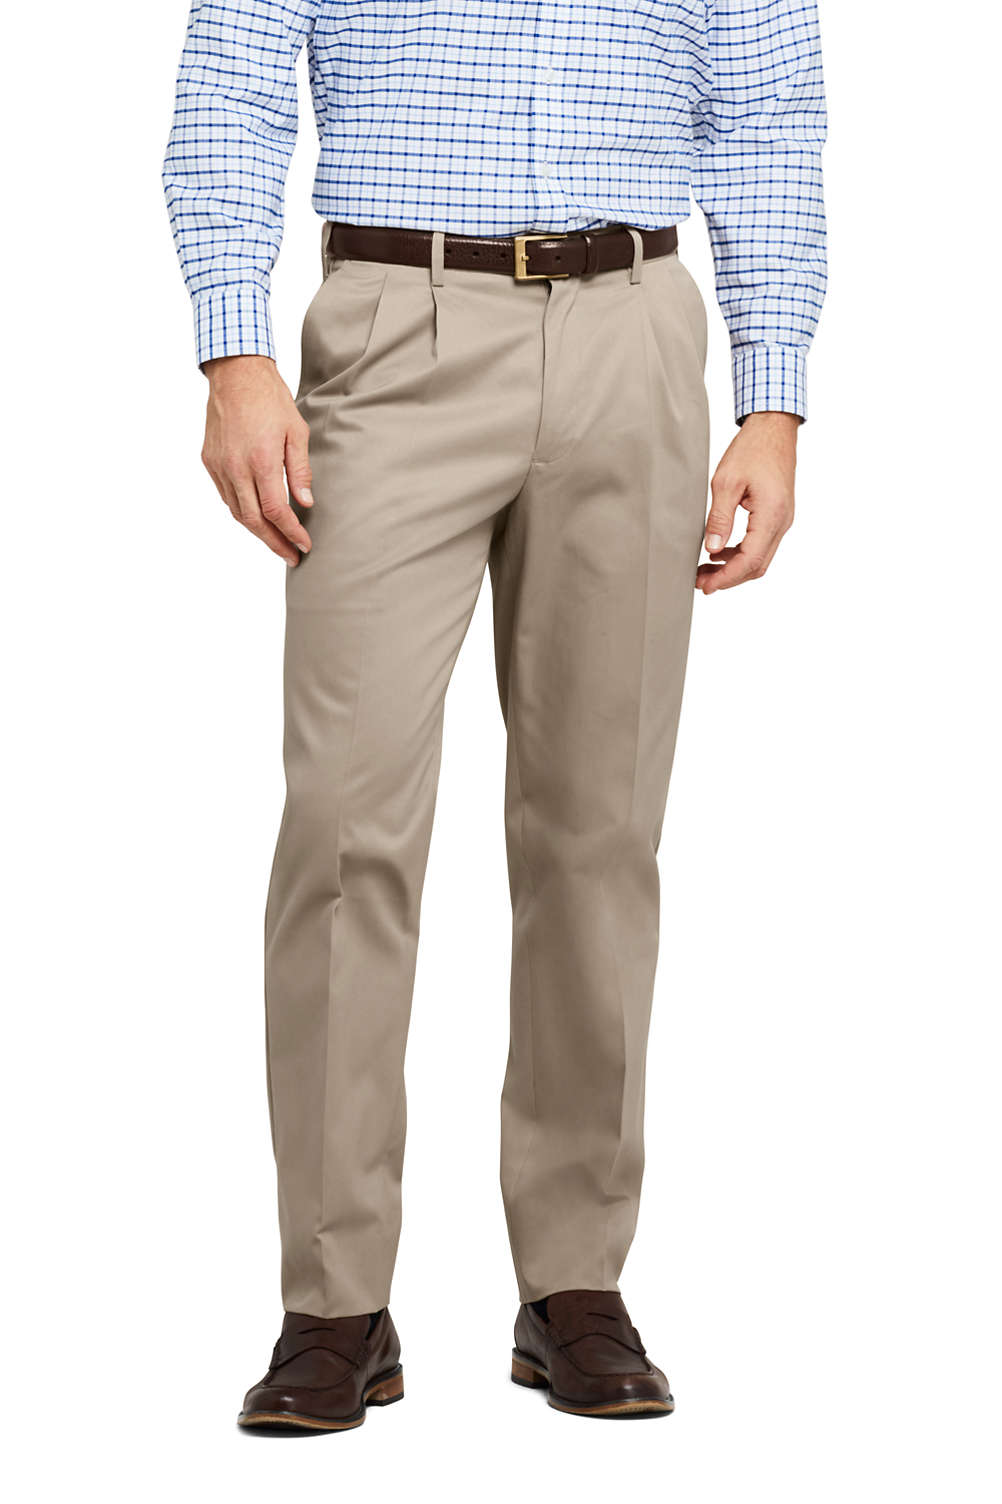 Men S Traditional Fit Pleat No Iron Twill Dress Trousers From Lands End